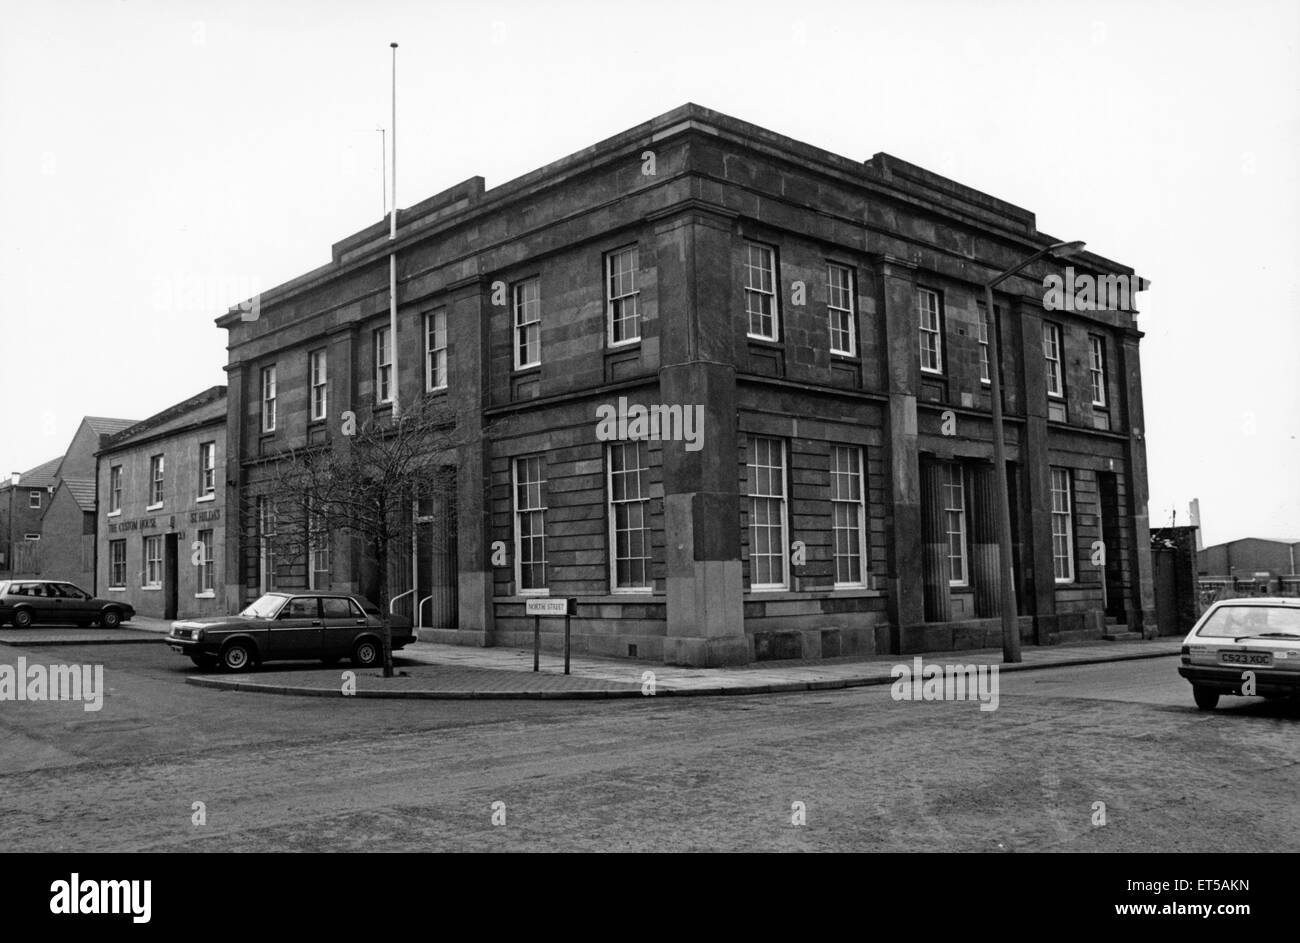 The Custom House, St Hilda, Middlesbrough, 1st March 1989. - Stock Image